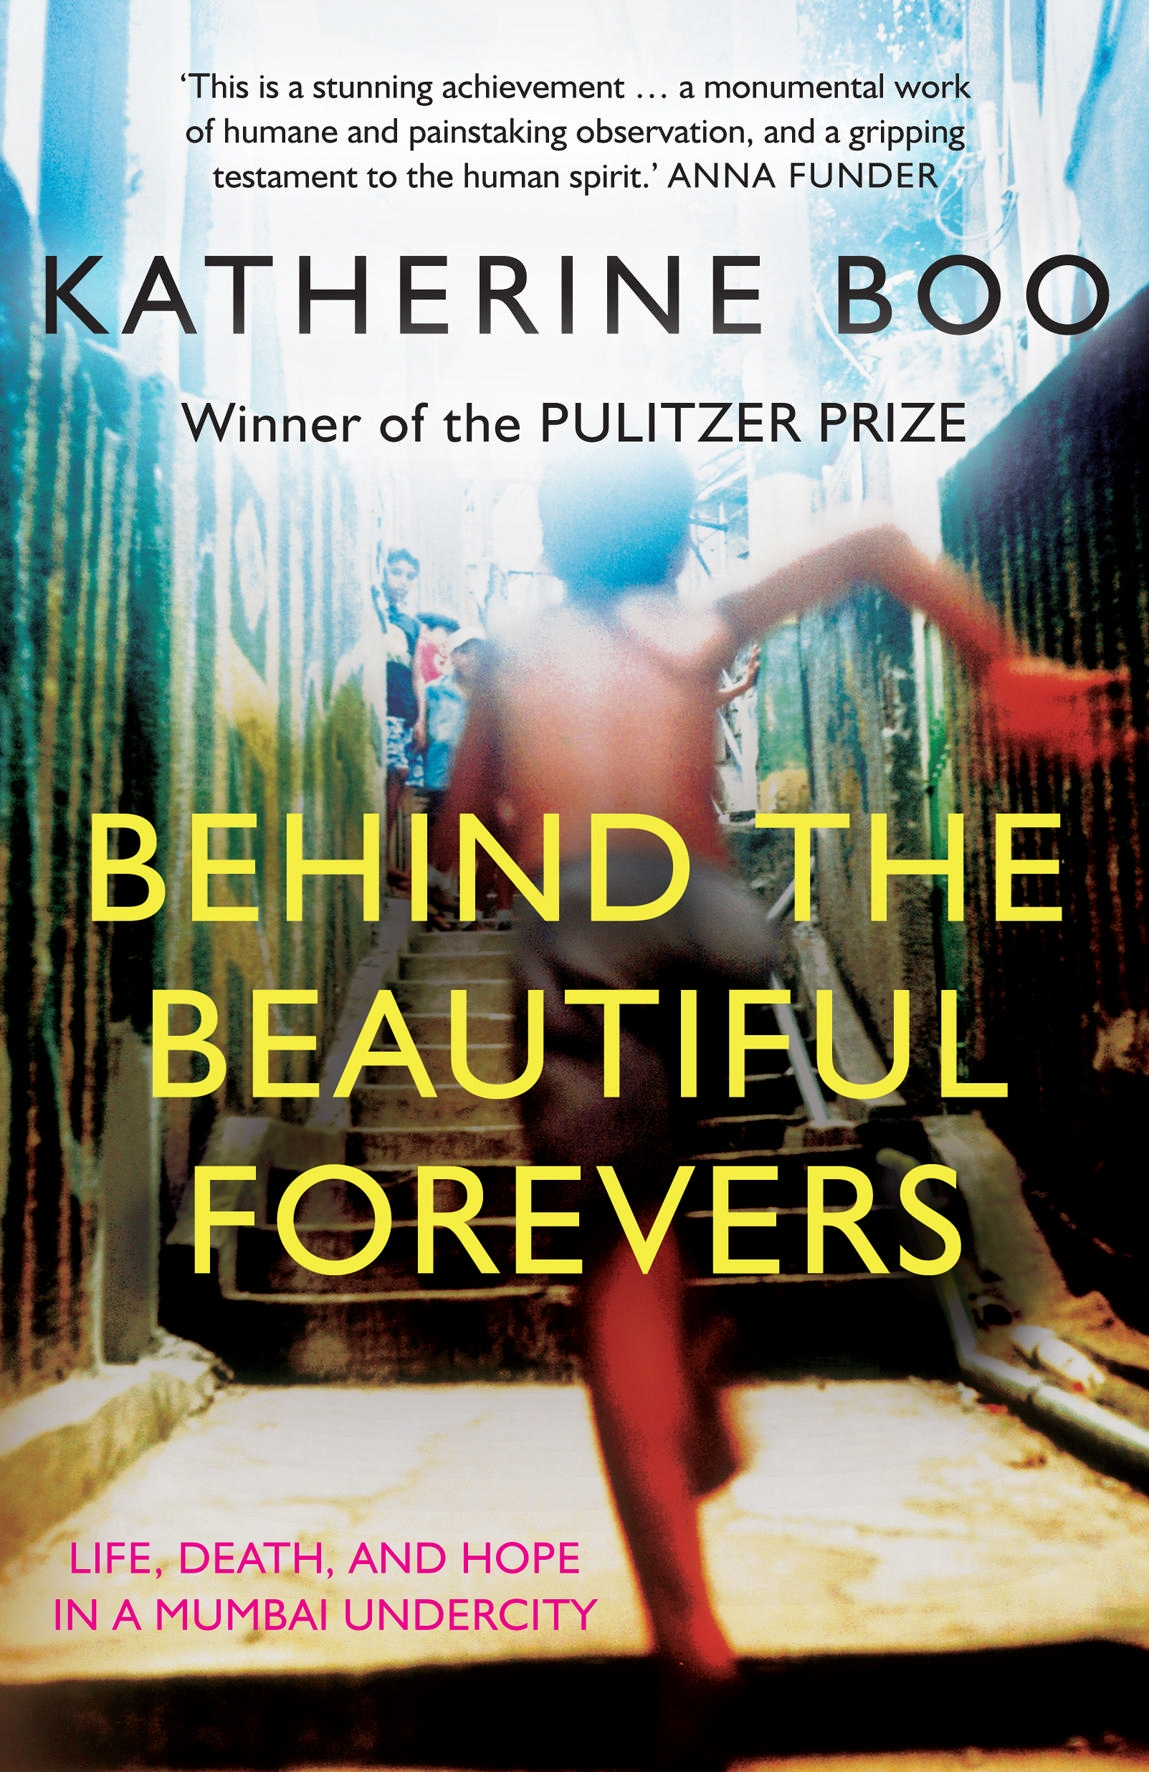 the daily struggles of slum dwellers in mumbai in behind the beautiful forevers life death and hope  'behind the beautiful forevers' life in a mumbai slum reveals how the 'brutal capriciousness' of daily life can undermine people's economic security.